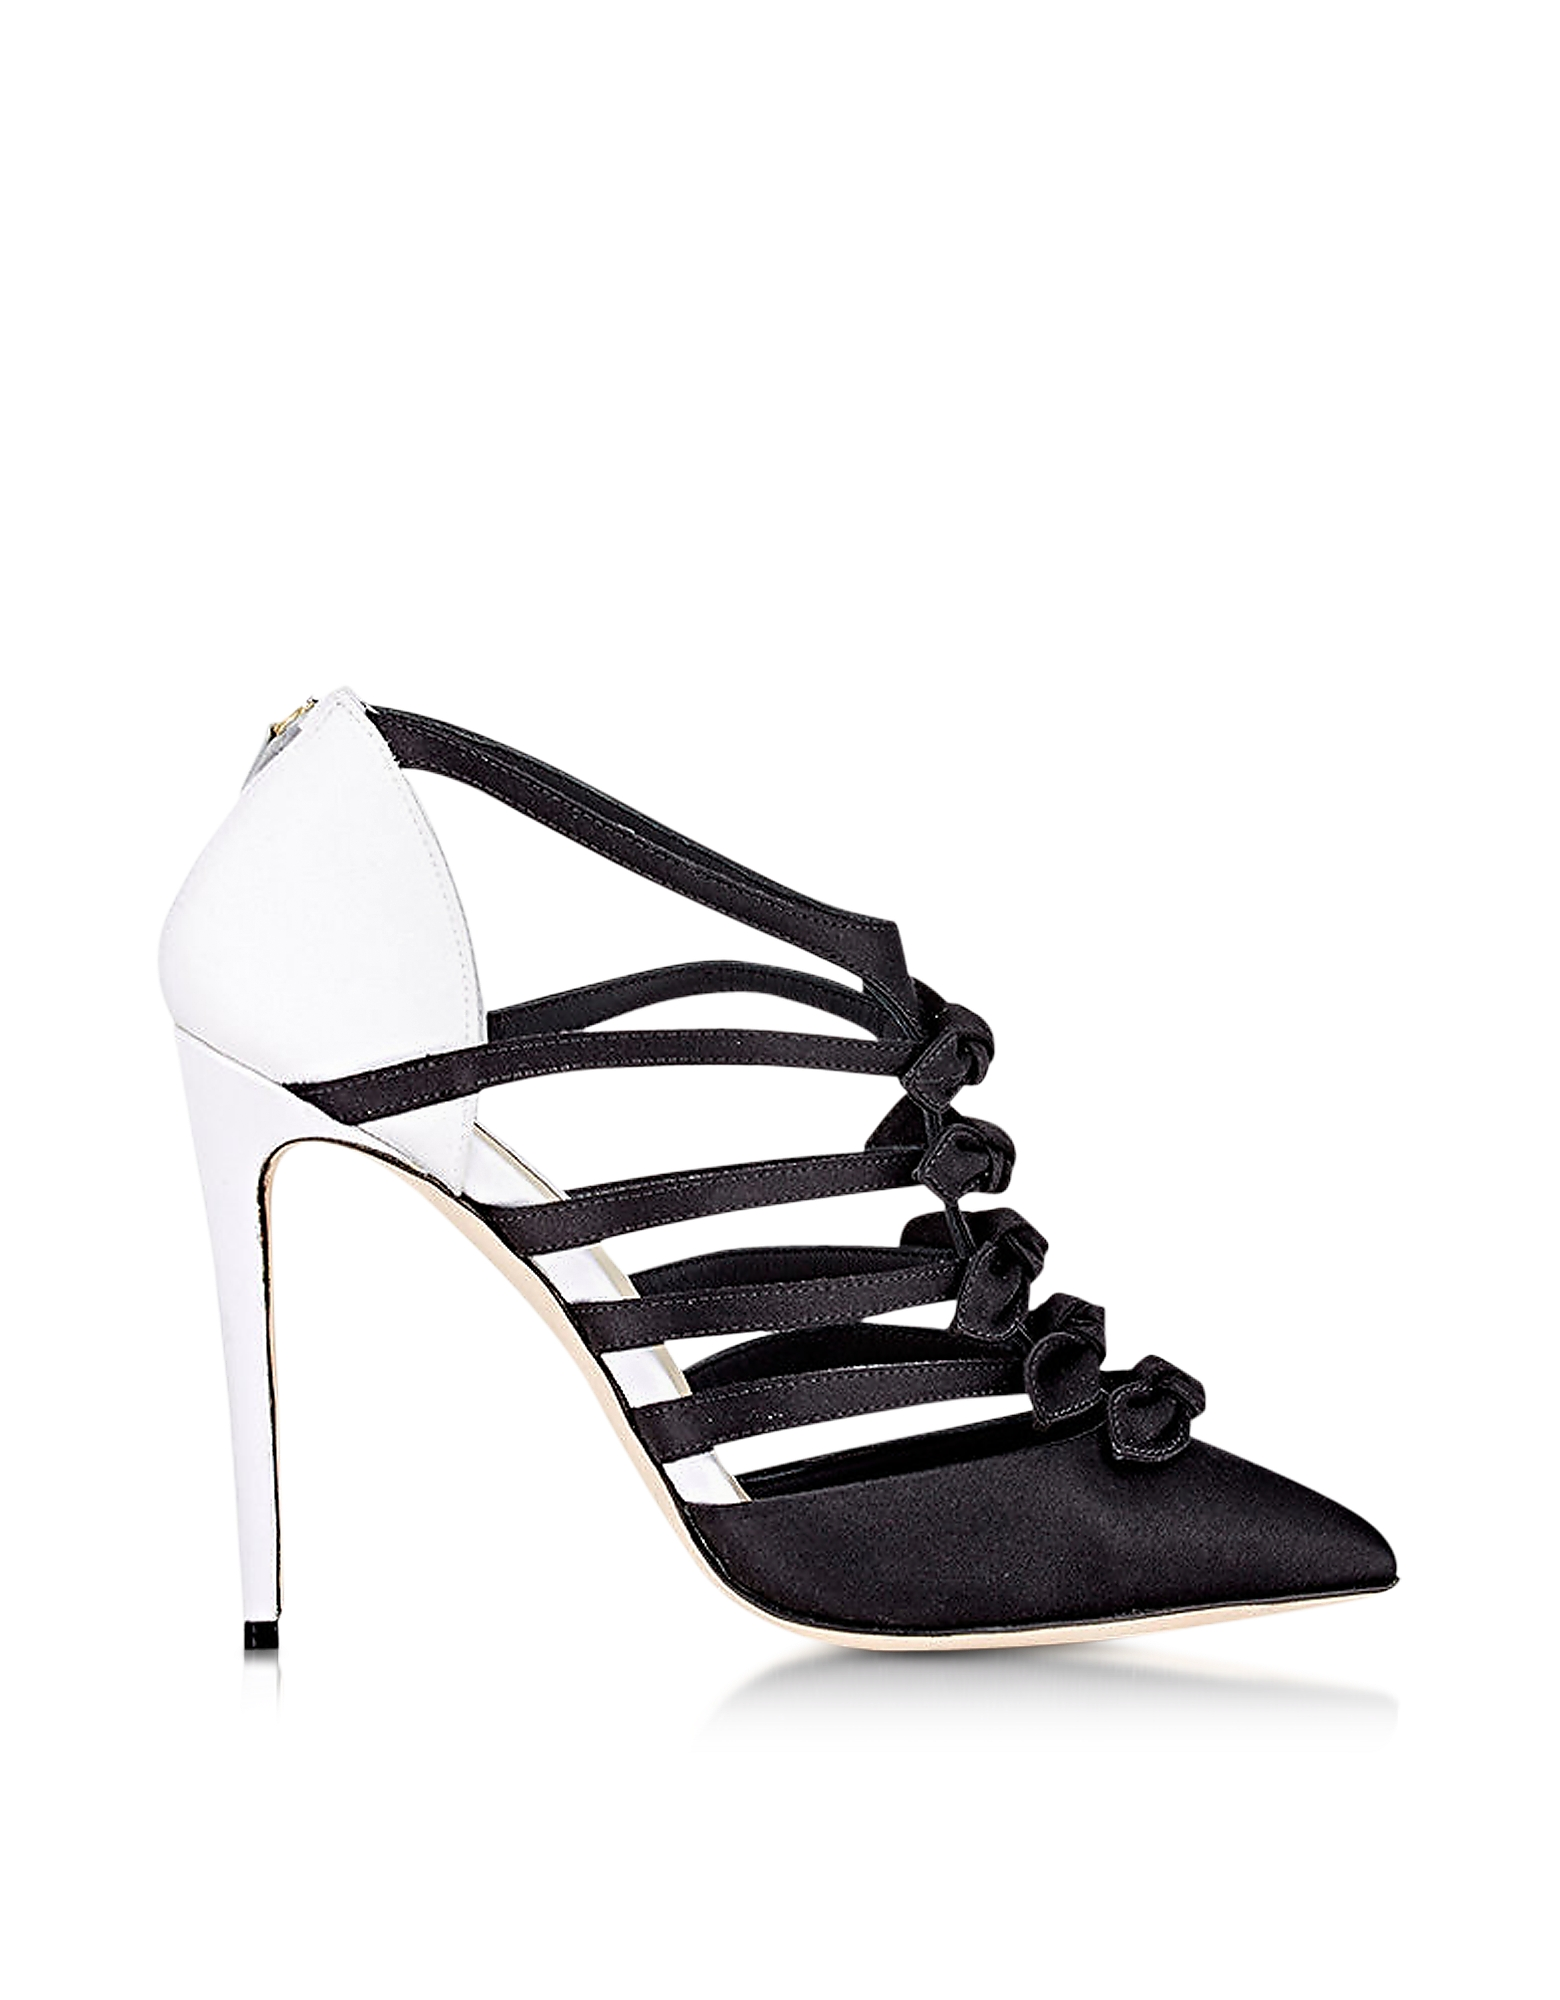 Olgana Paris Shoes, La Malicieuse Black & White Satin Pump